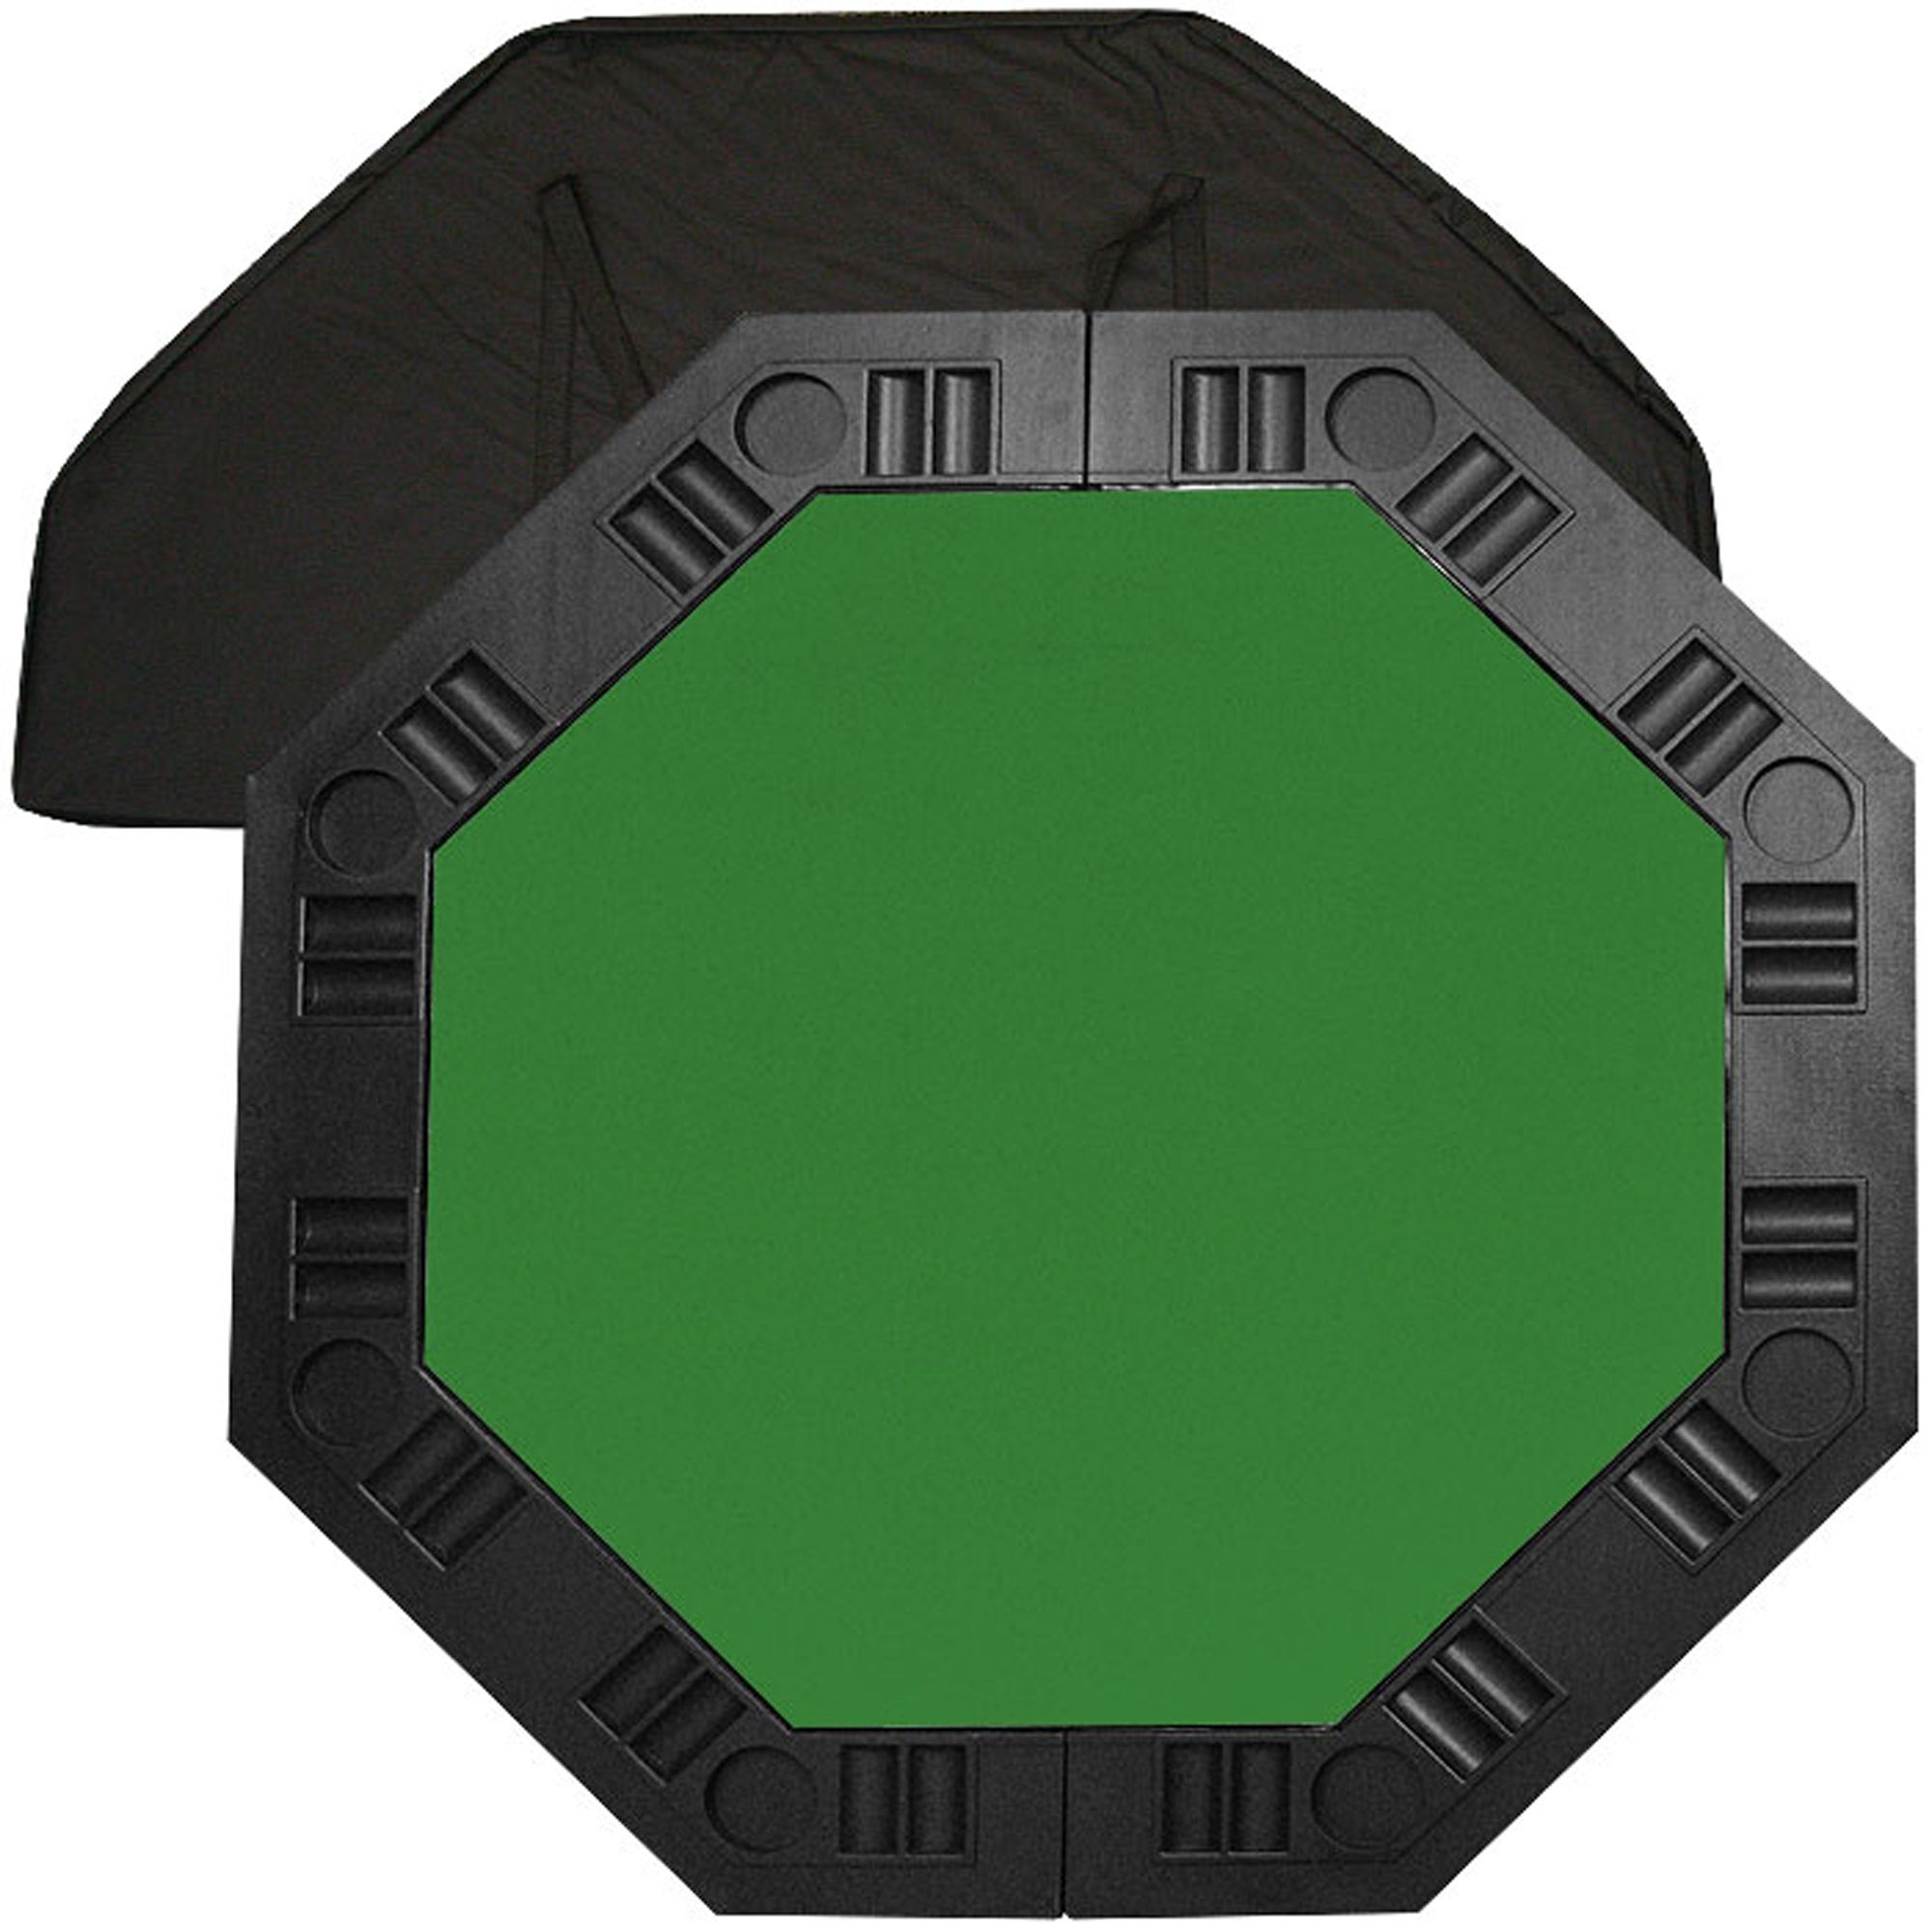 Trademark  8 Player Octagonal Table top